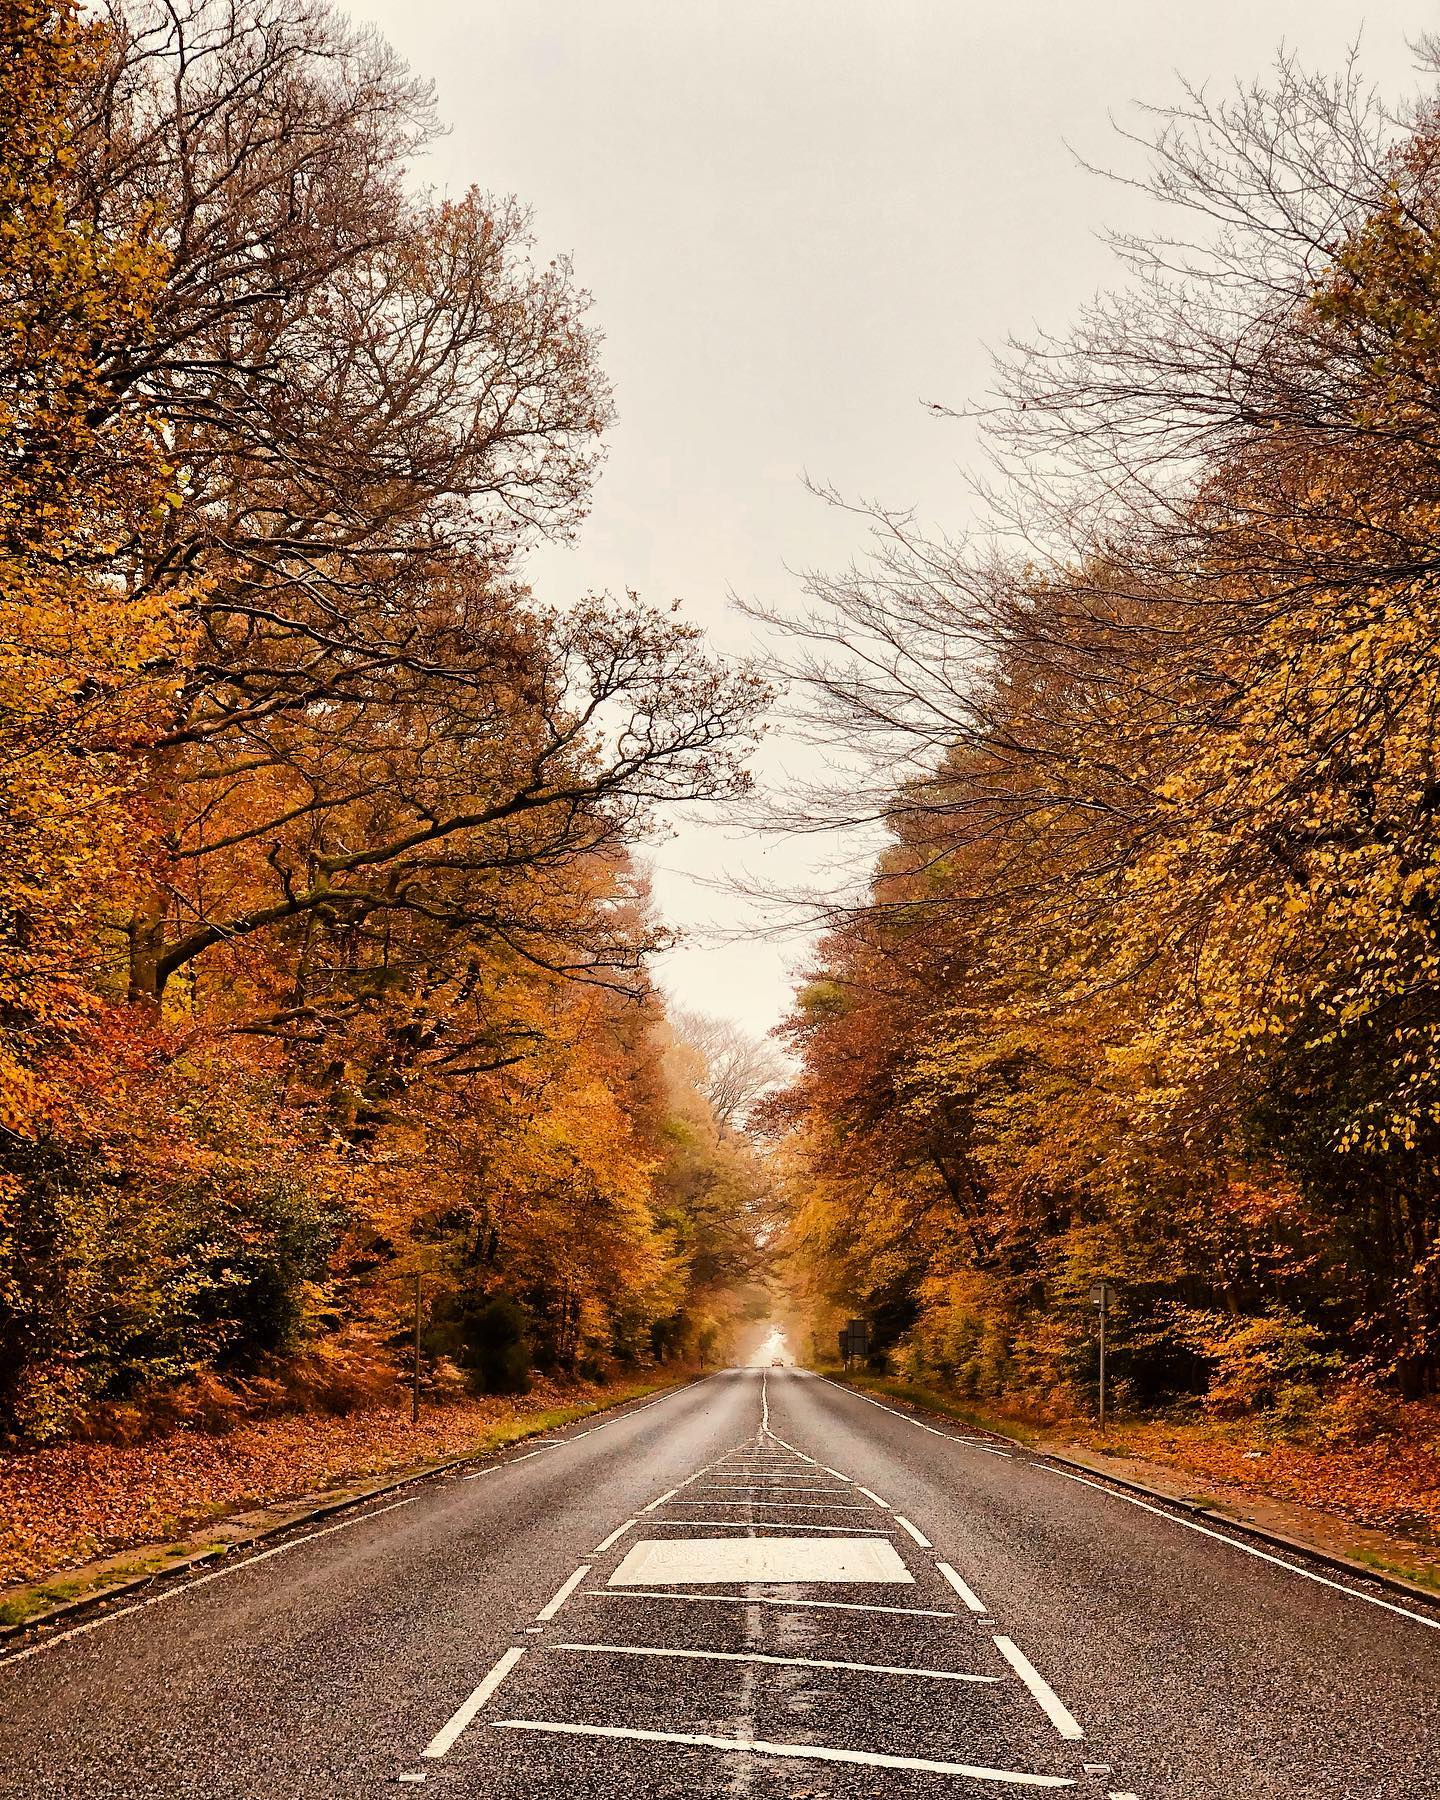 Long drive out of nowhere on my own is always such an exultation! 🍁🍂🍁 #Autumndrive